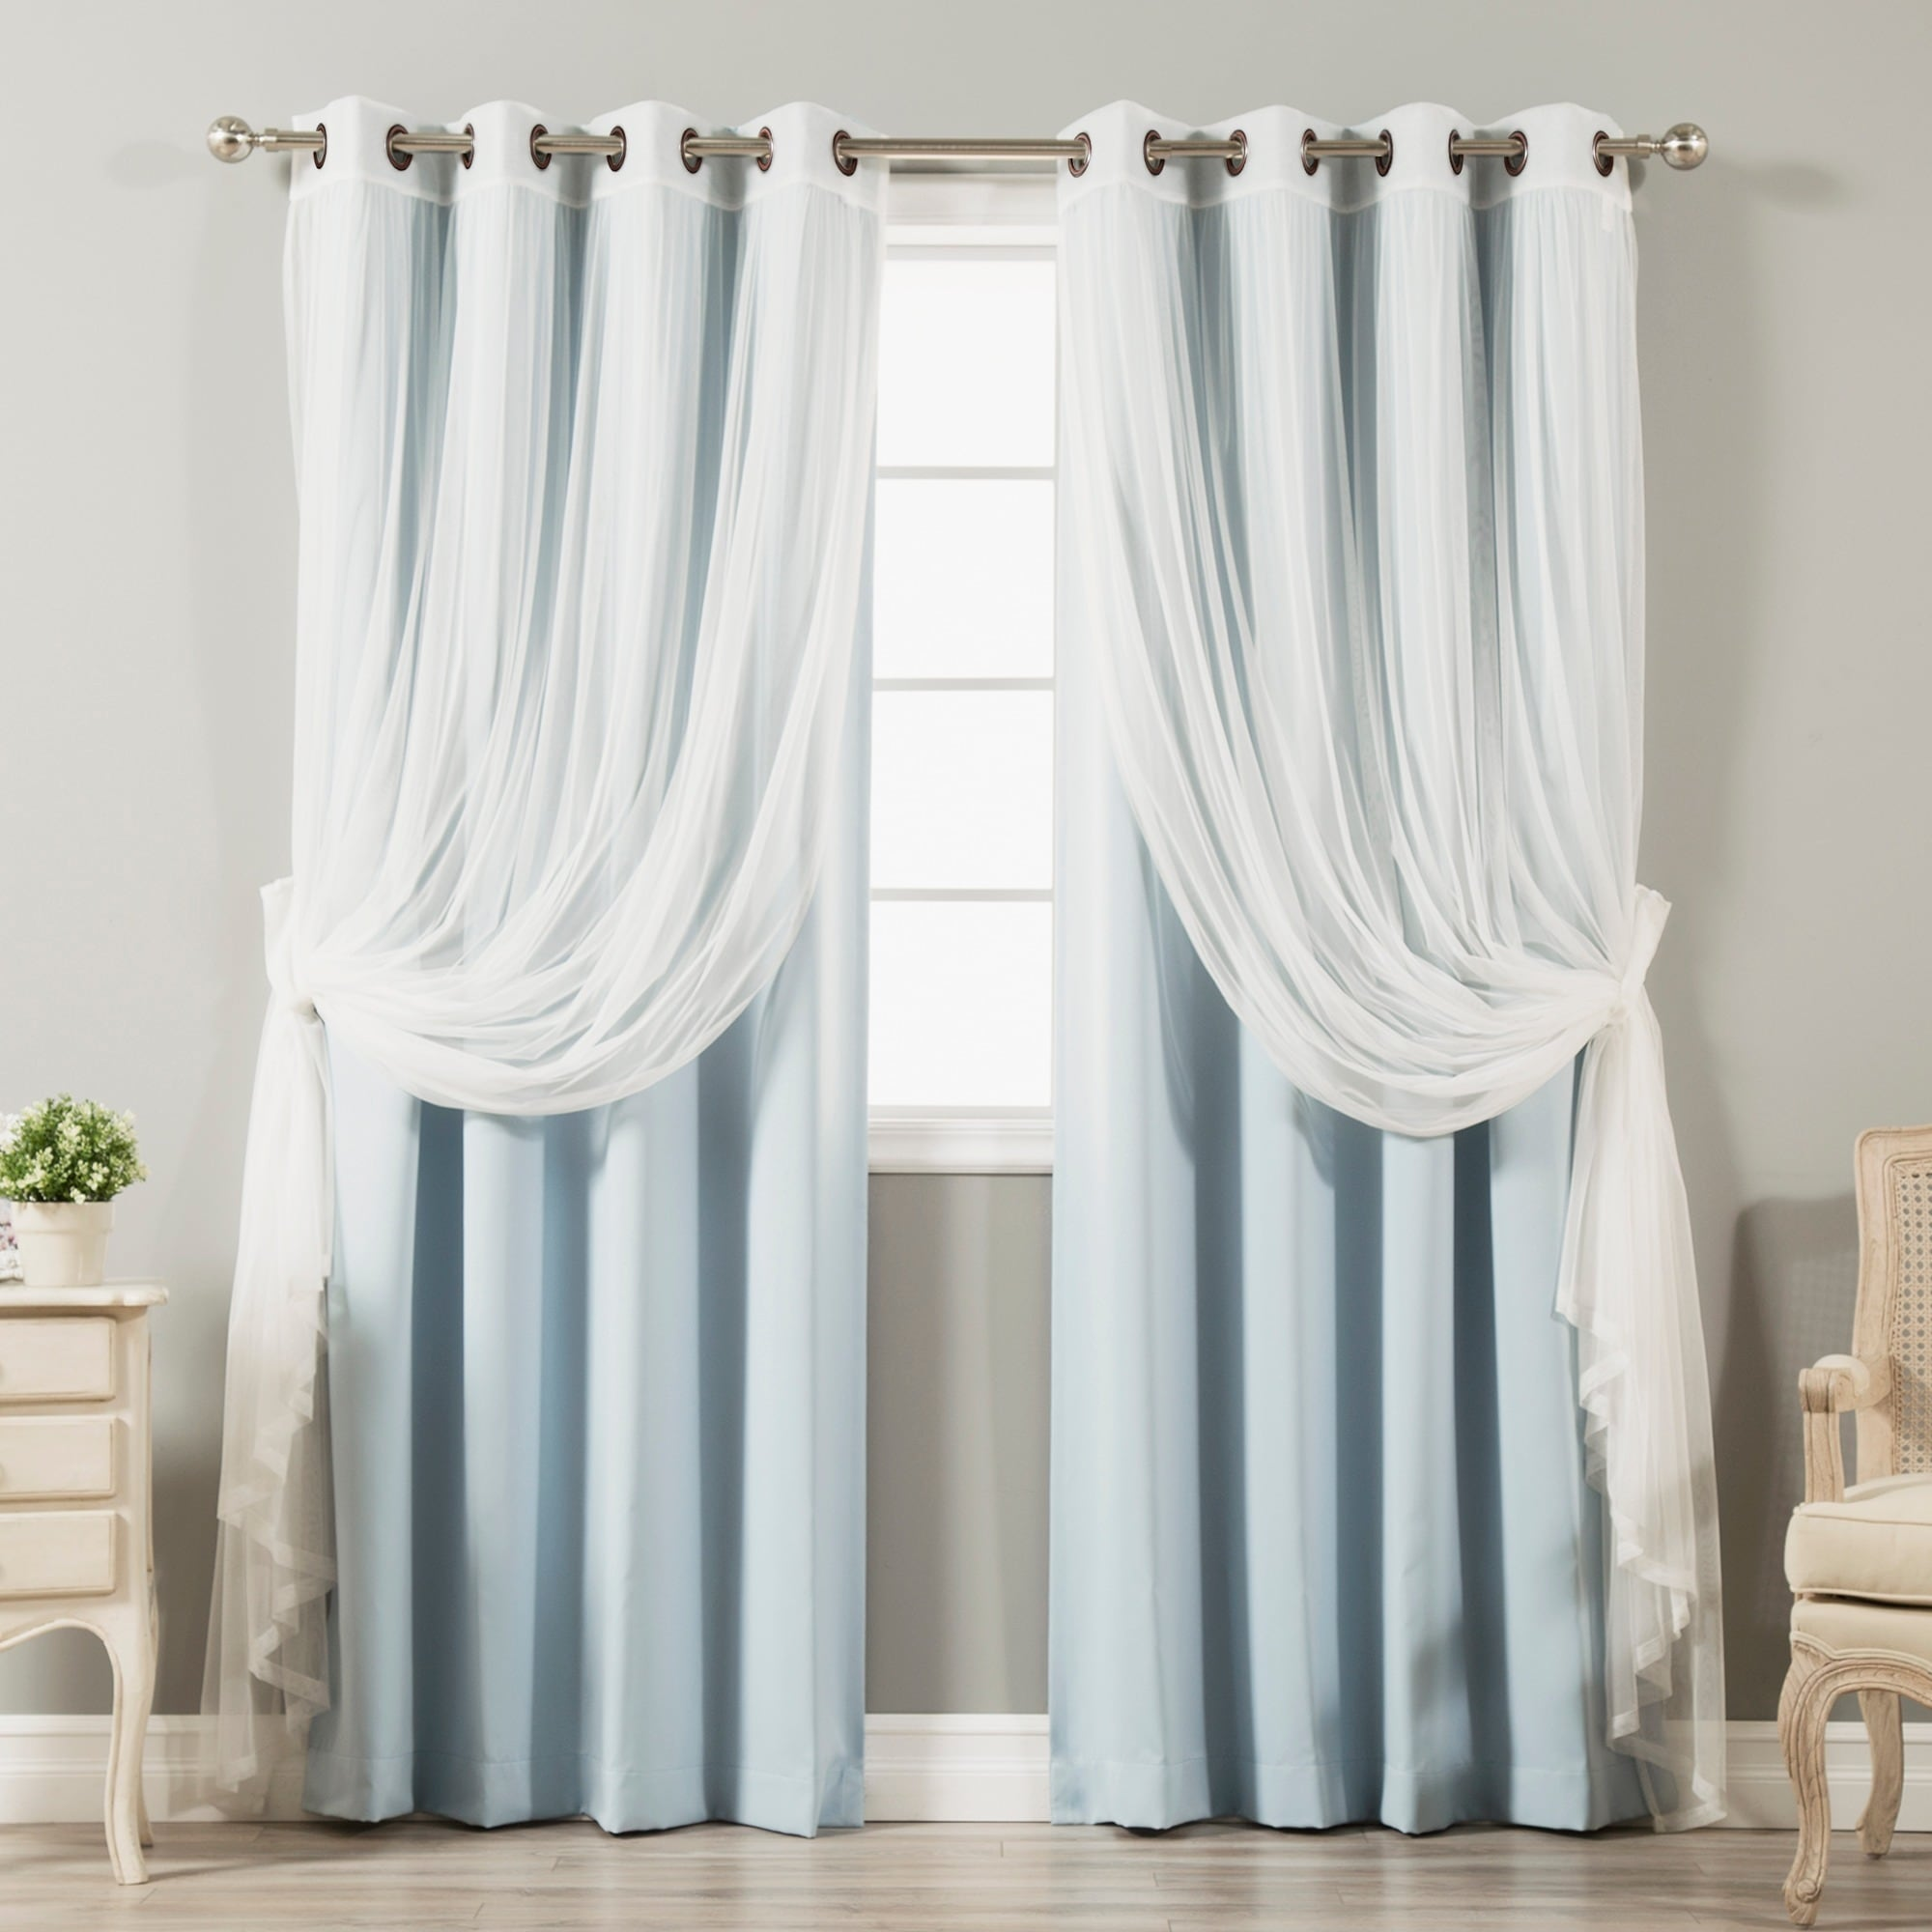 curtains myhome panels products curtain judith sheer grommet embroidered pack